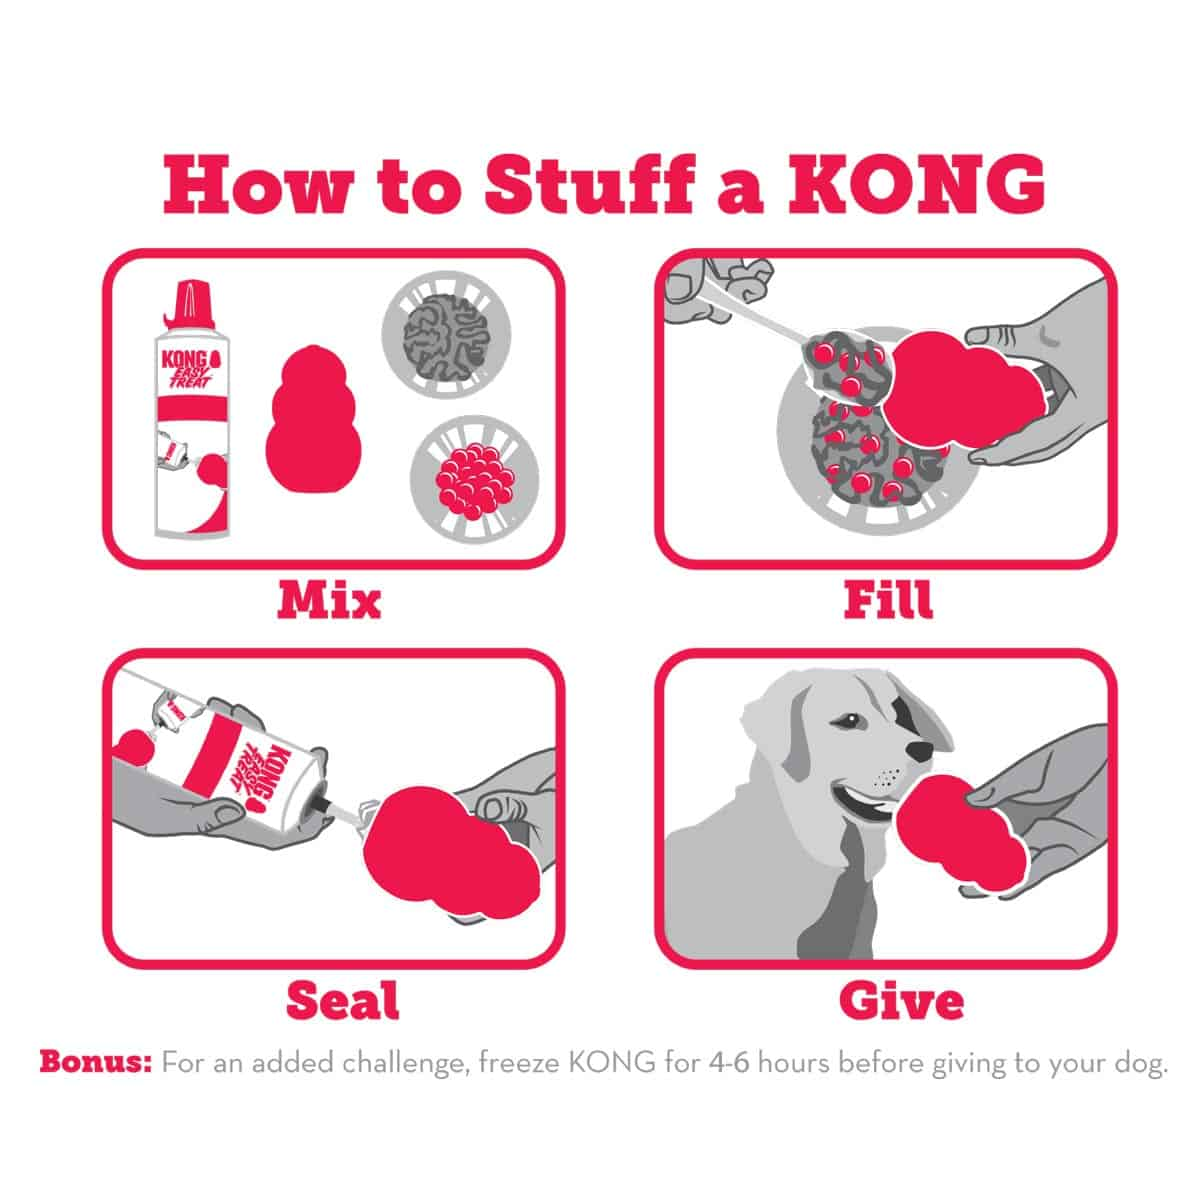 how to stuff a kong 3